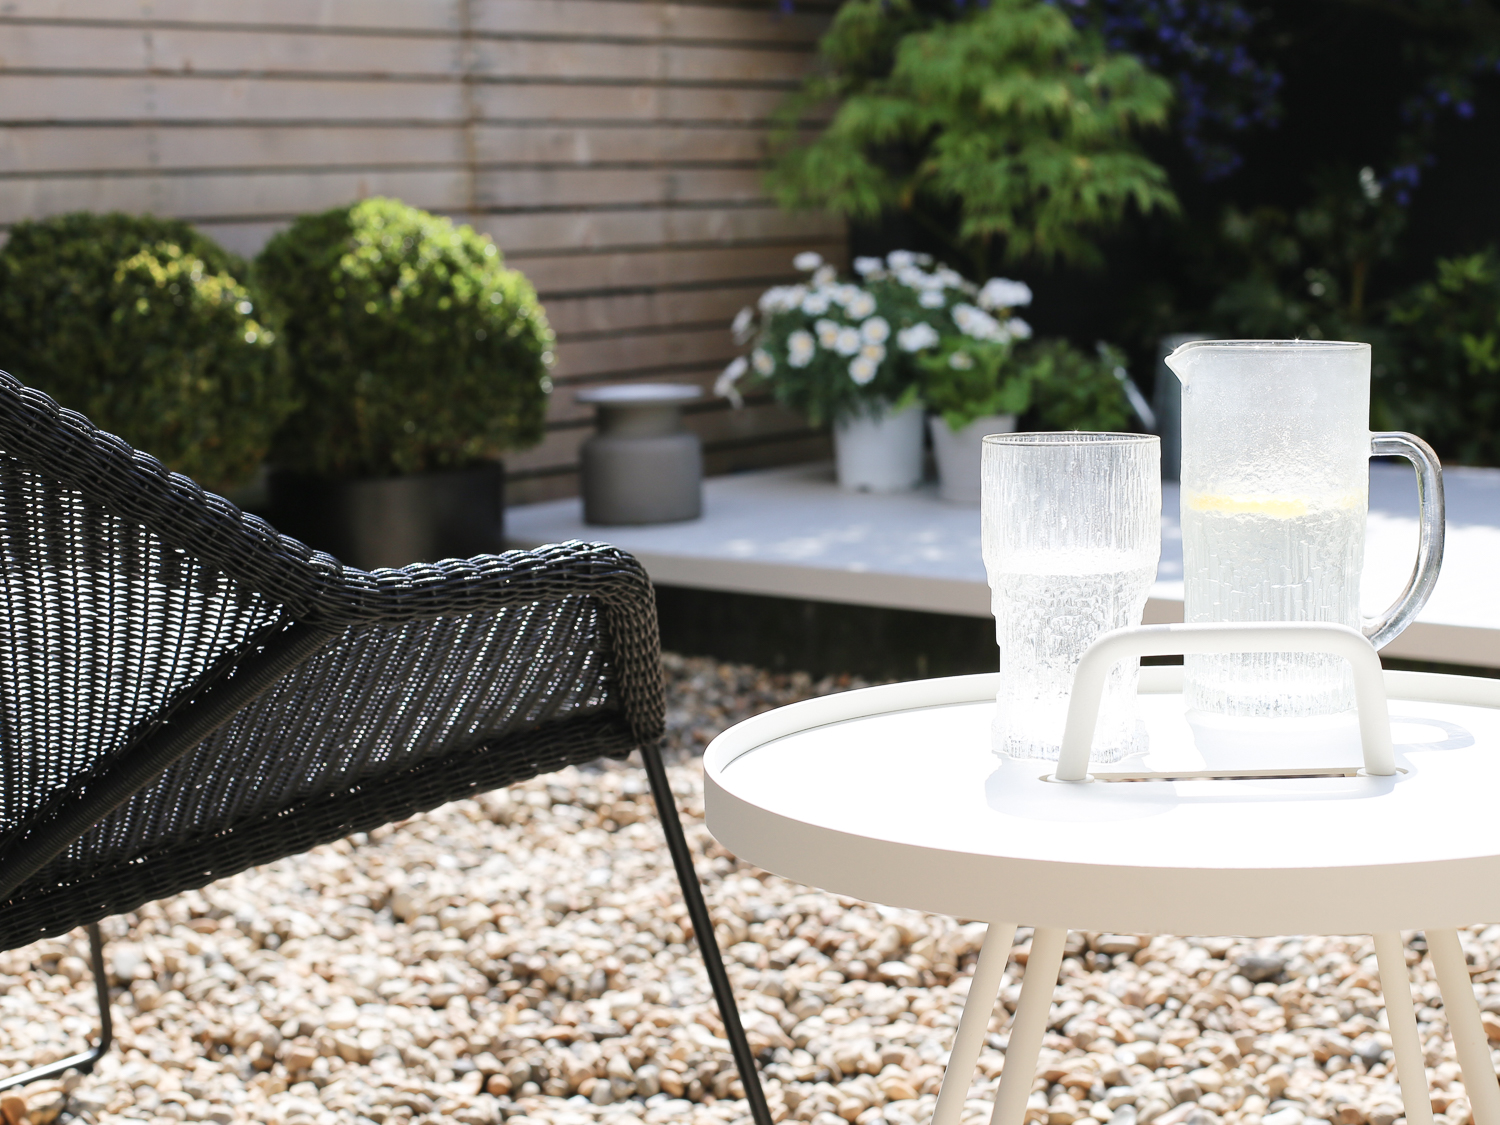 Cane-line table and garden chair | Design Hunter